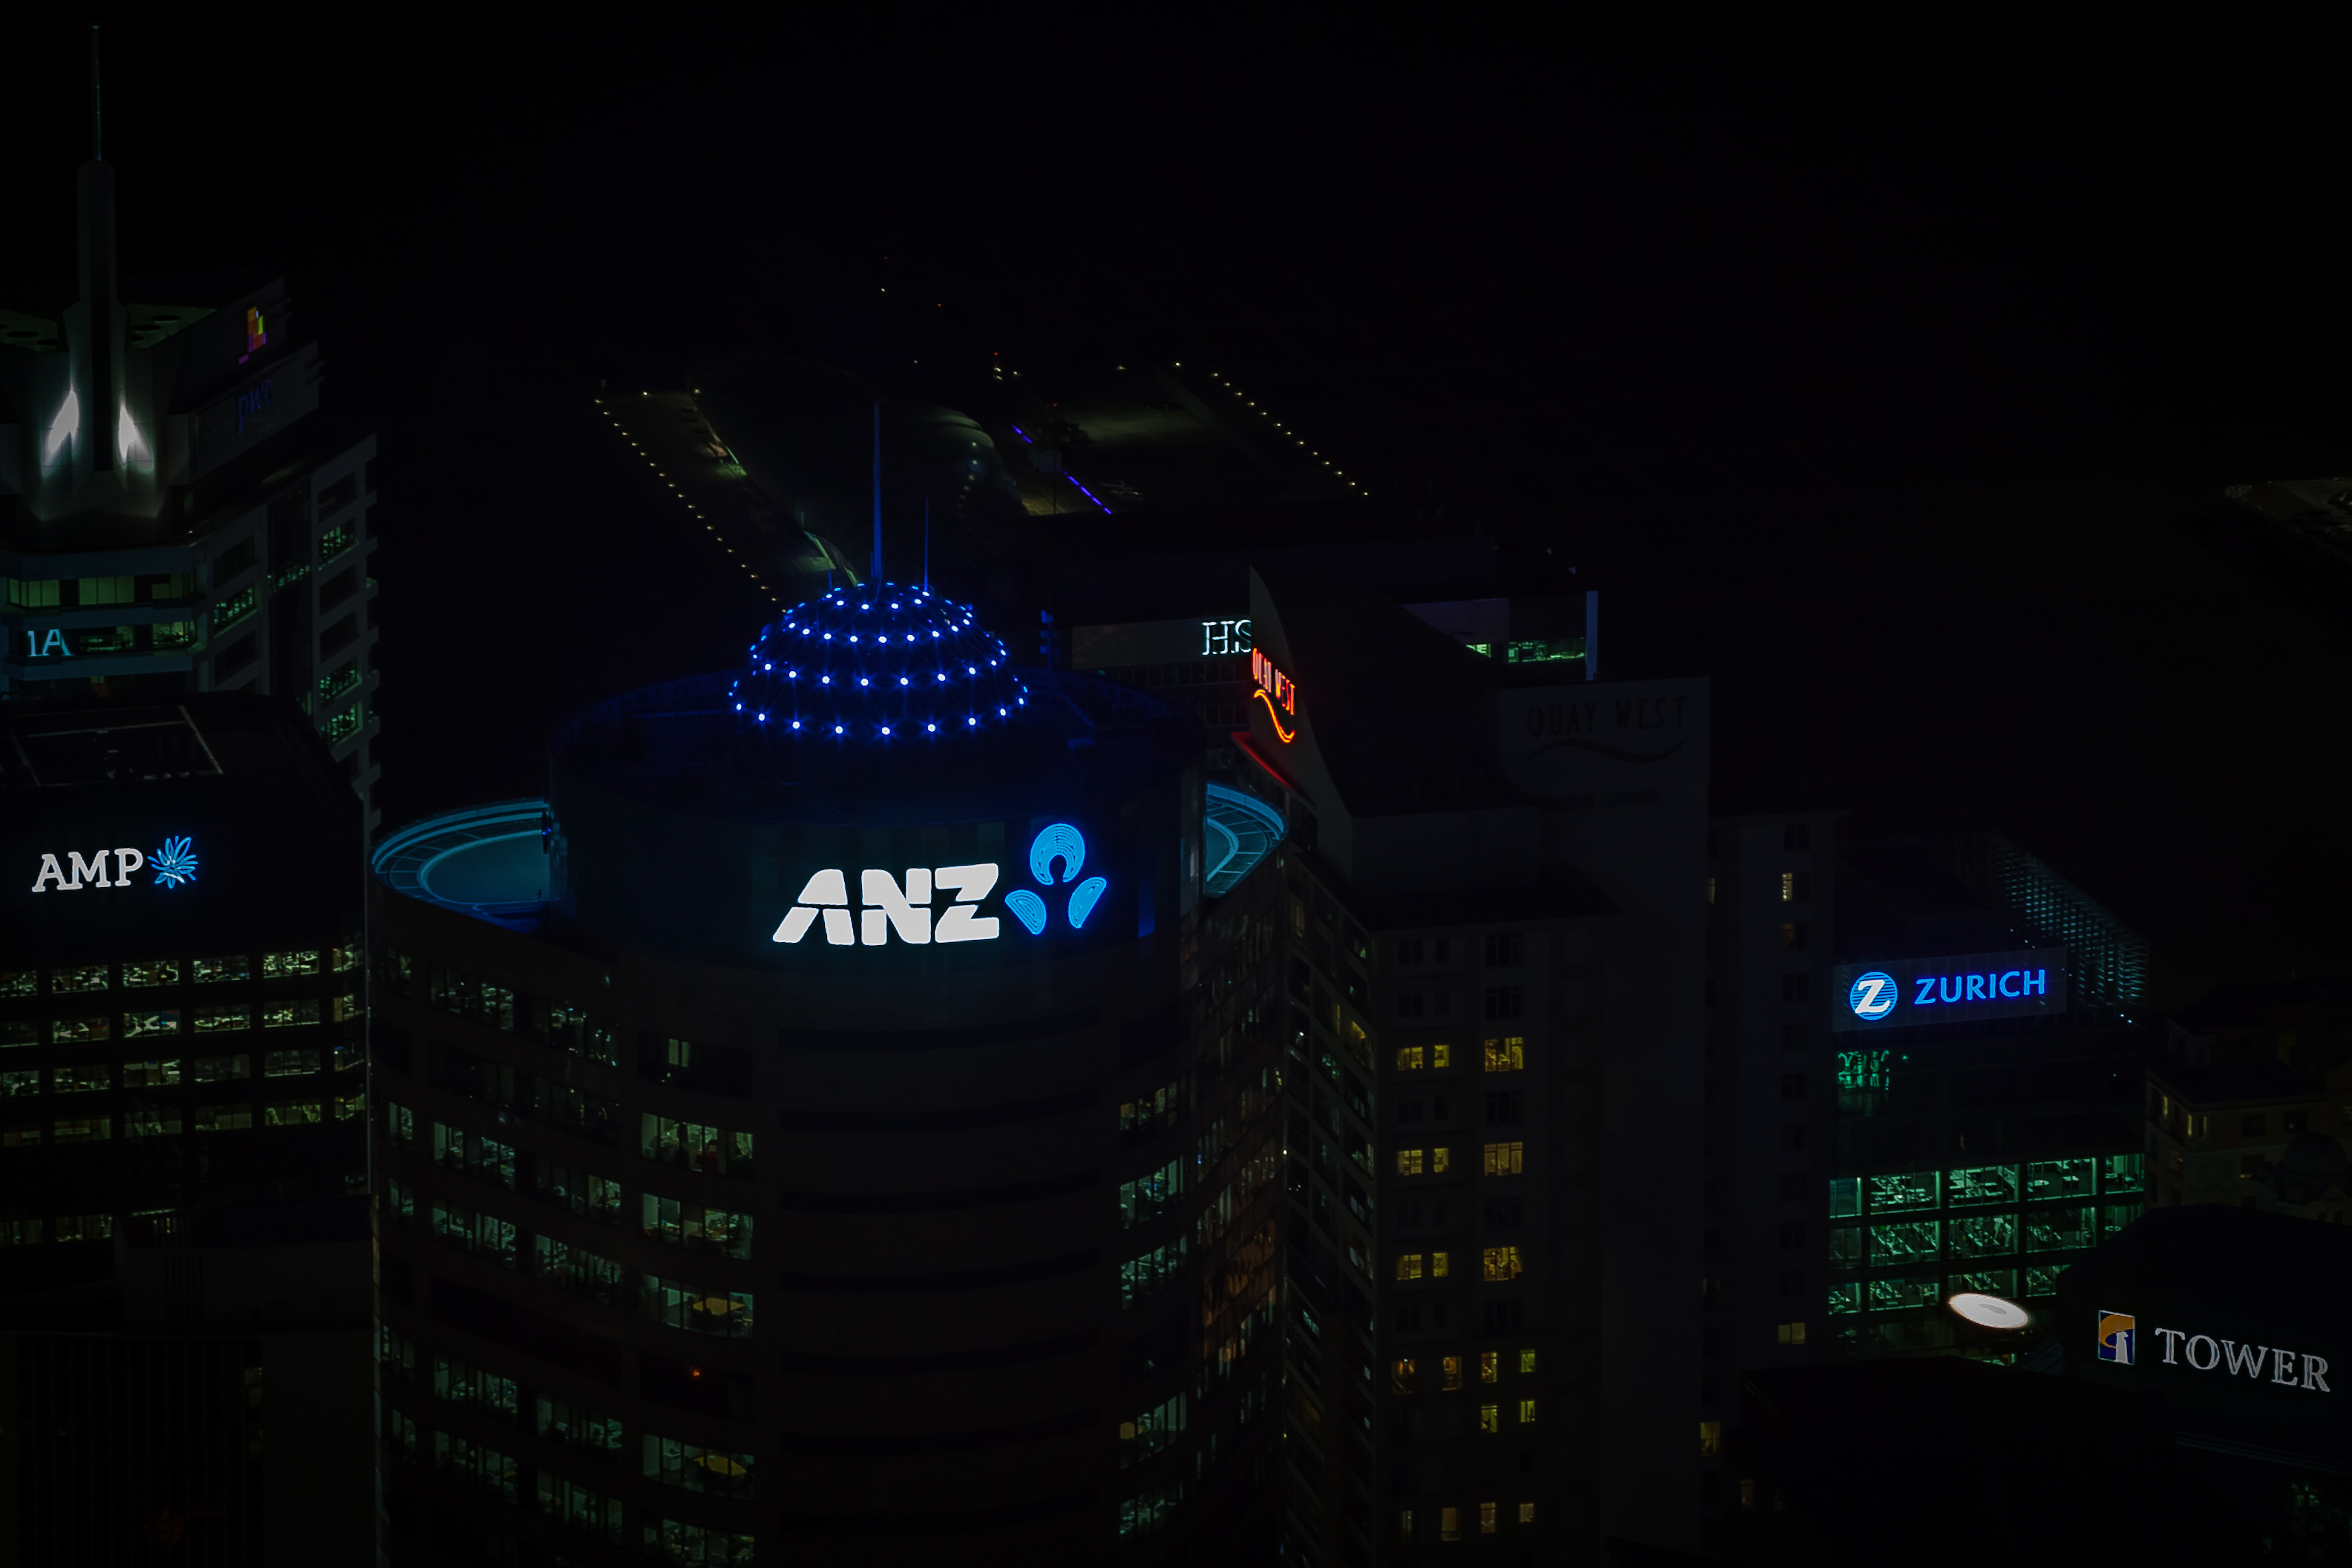 ANZ Project, New Zealand